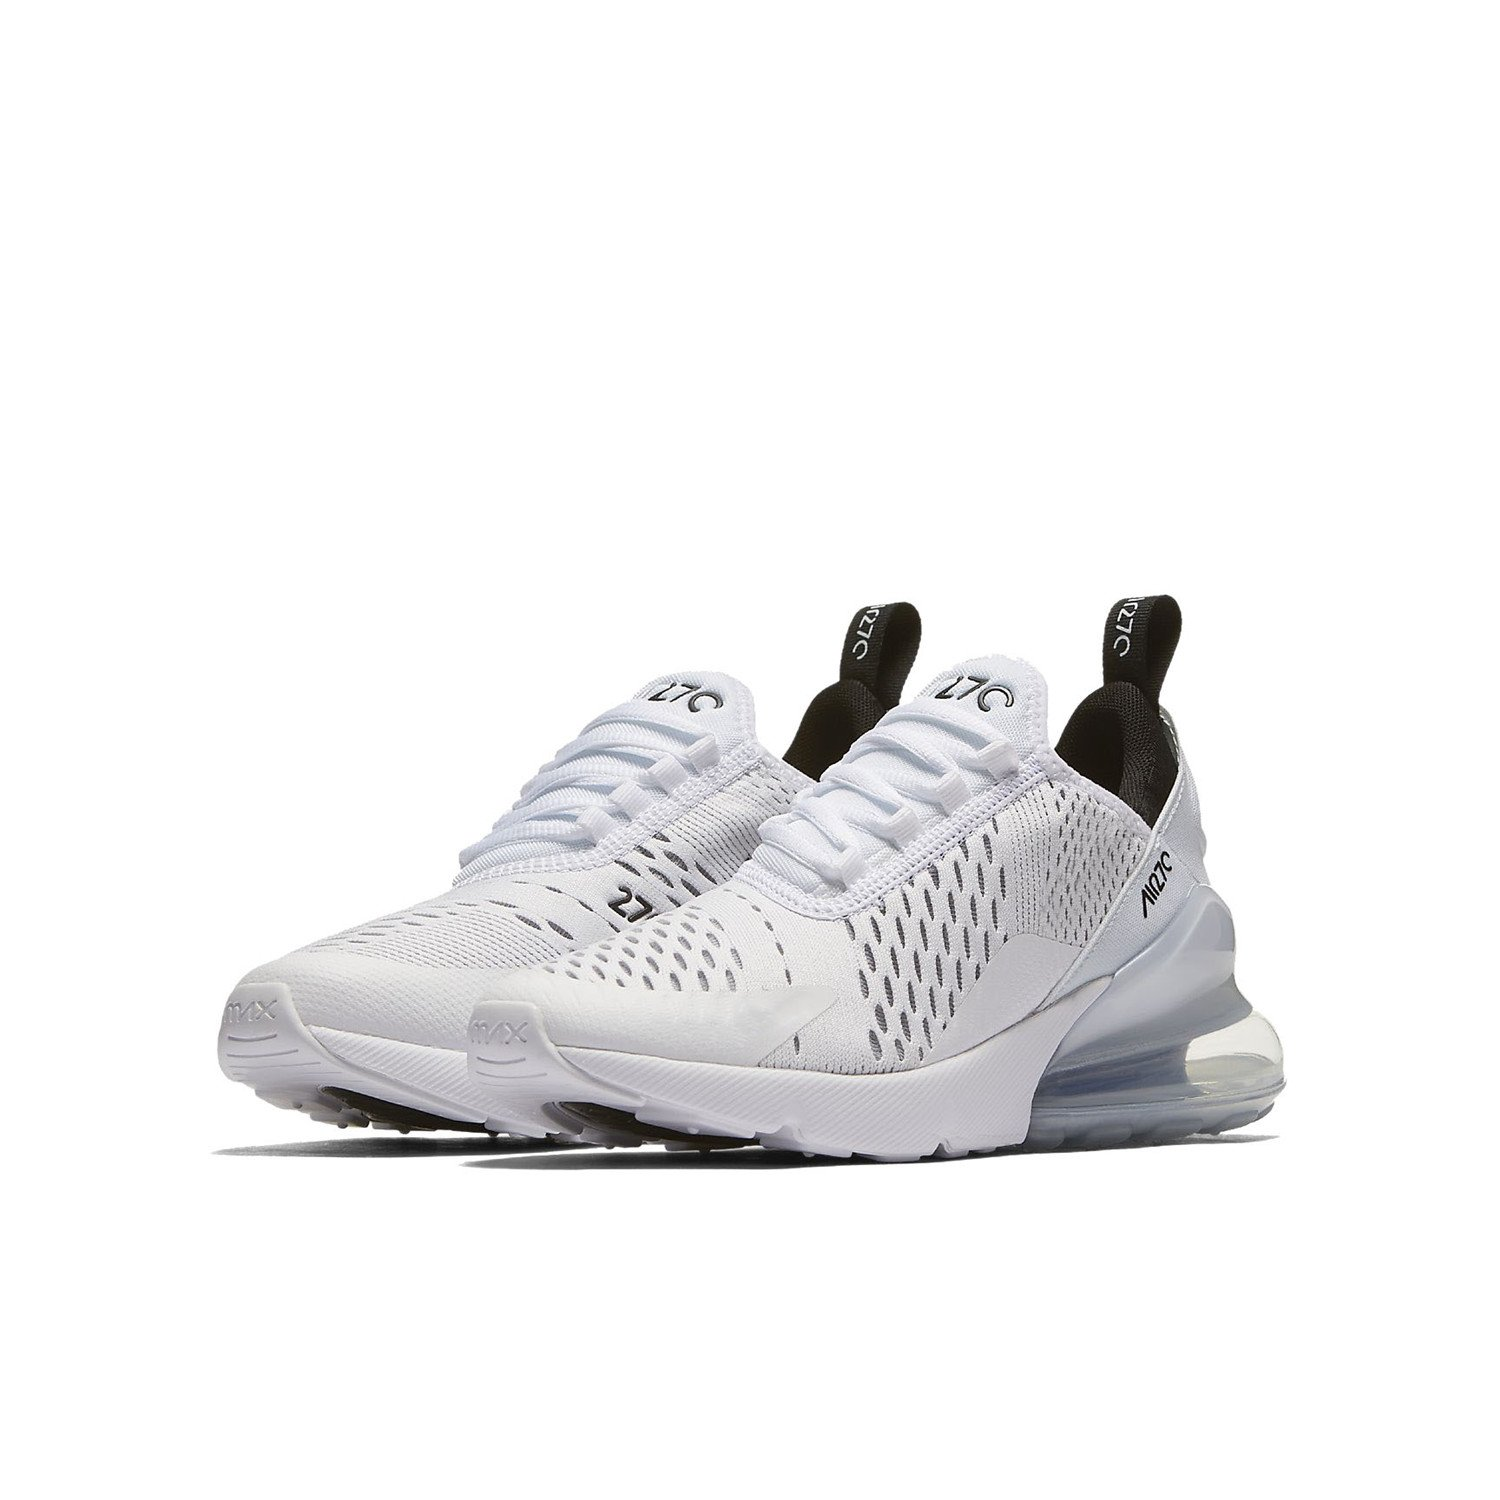 TENGFEI Air 270 Flyknit Men's Running Shoes Trainers Lace up Breathable Leisure Sneaker B07DJ46629 6 M US White